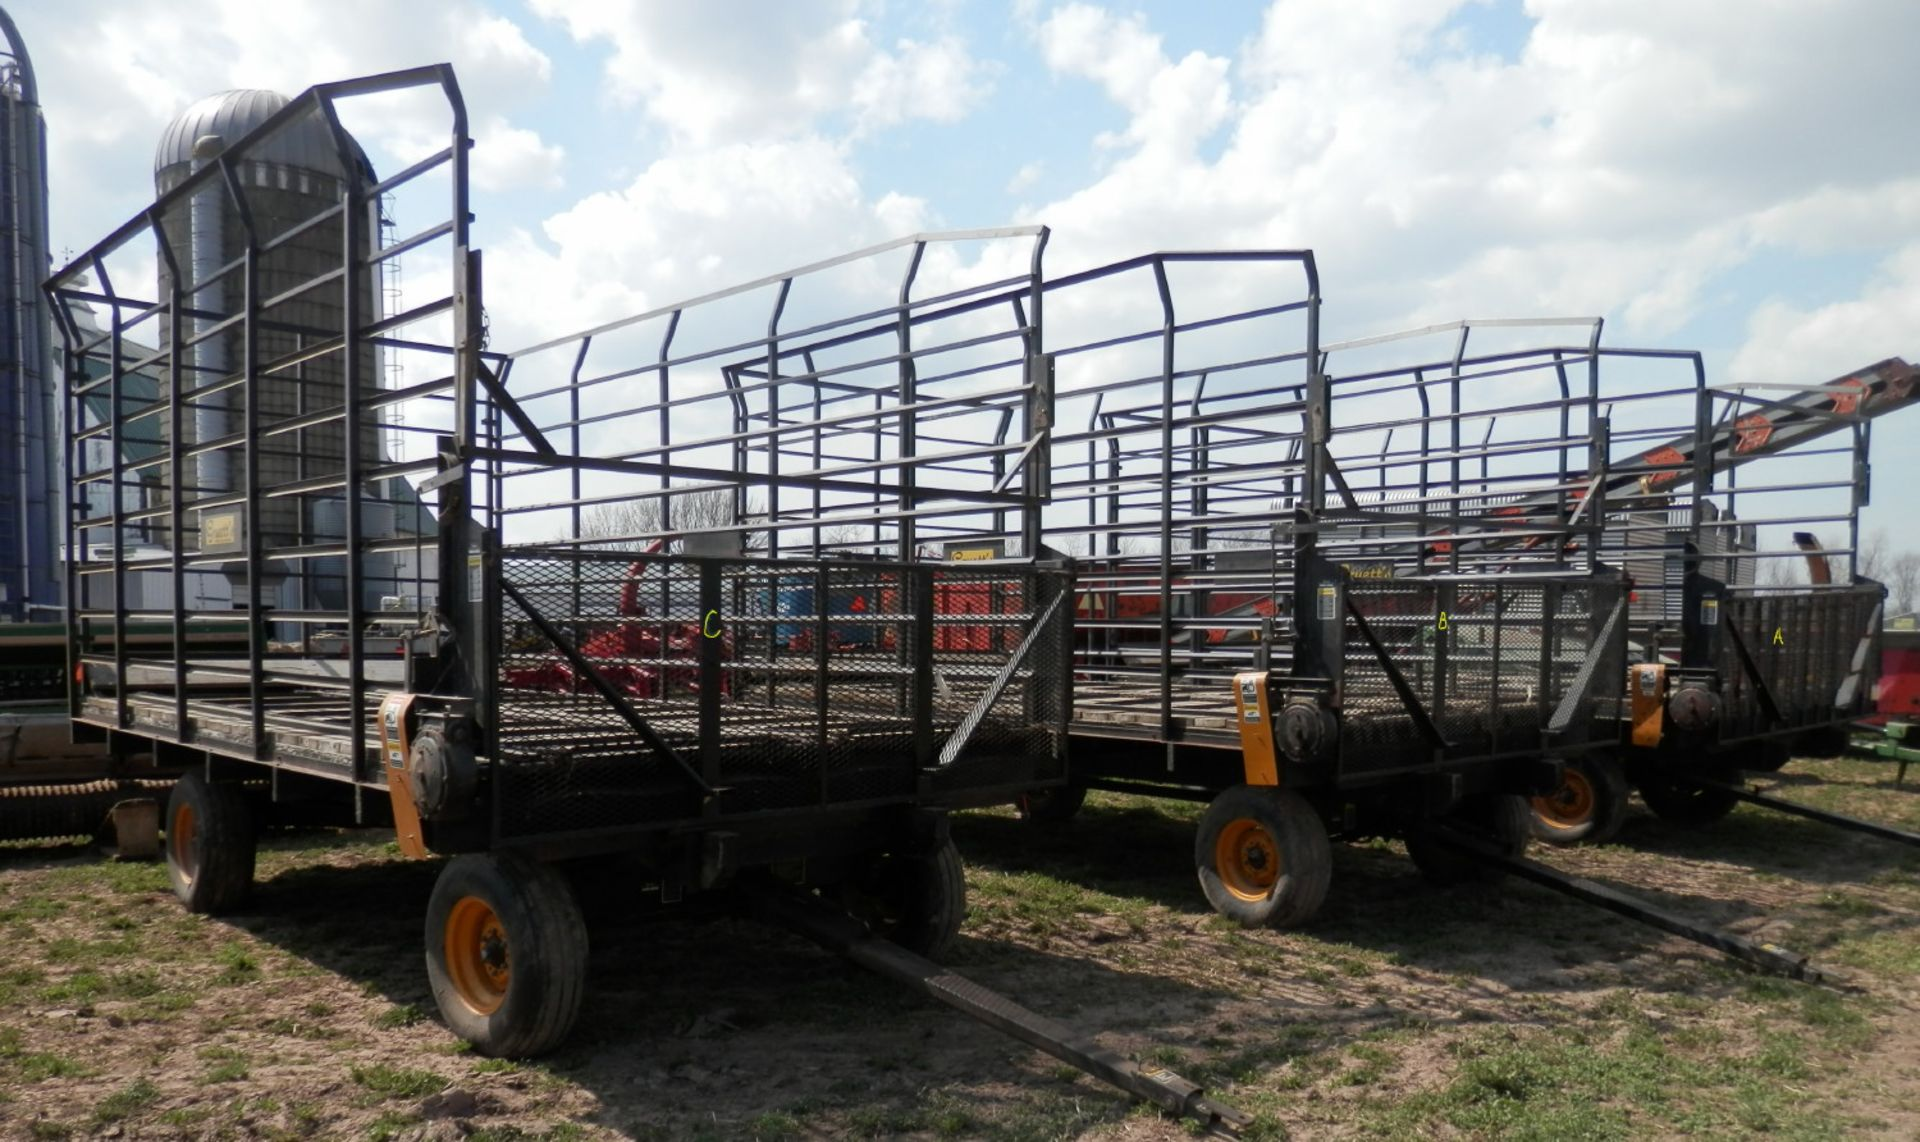 GRUETT 9X18 STEEL SIDE KICK BALE WAGONS, 3 AVAILABLE, SELLING CHOICE - Image 2 of 7